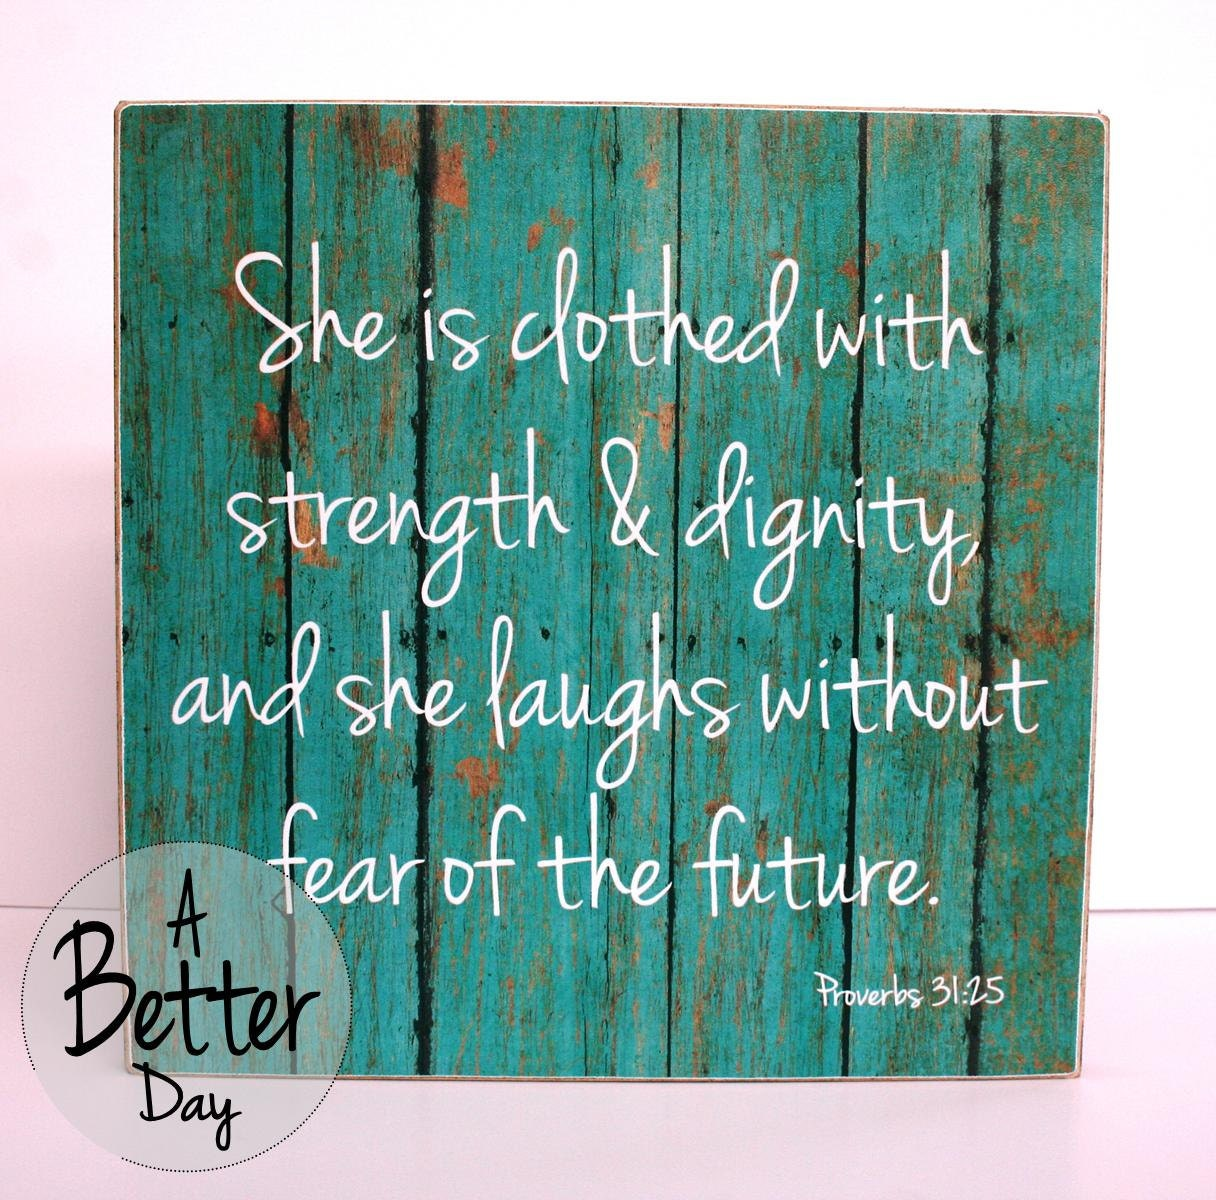 Proverbs 31 25 Quotes: Proverbs 31:25 She Is Clothed With Strength And By ABetterDay